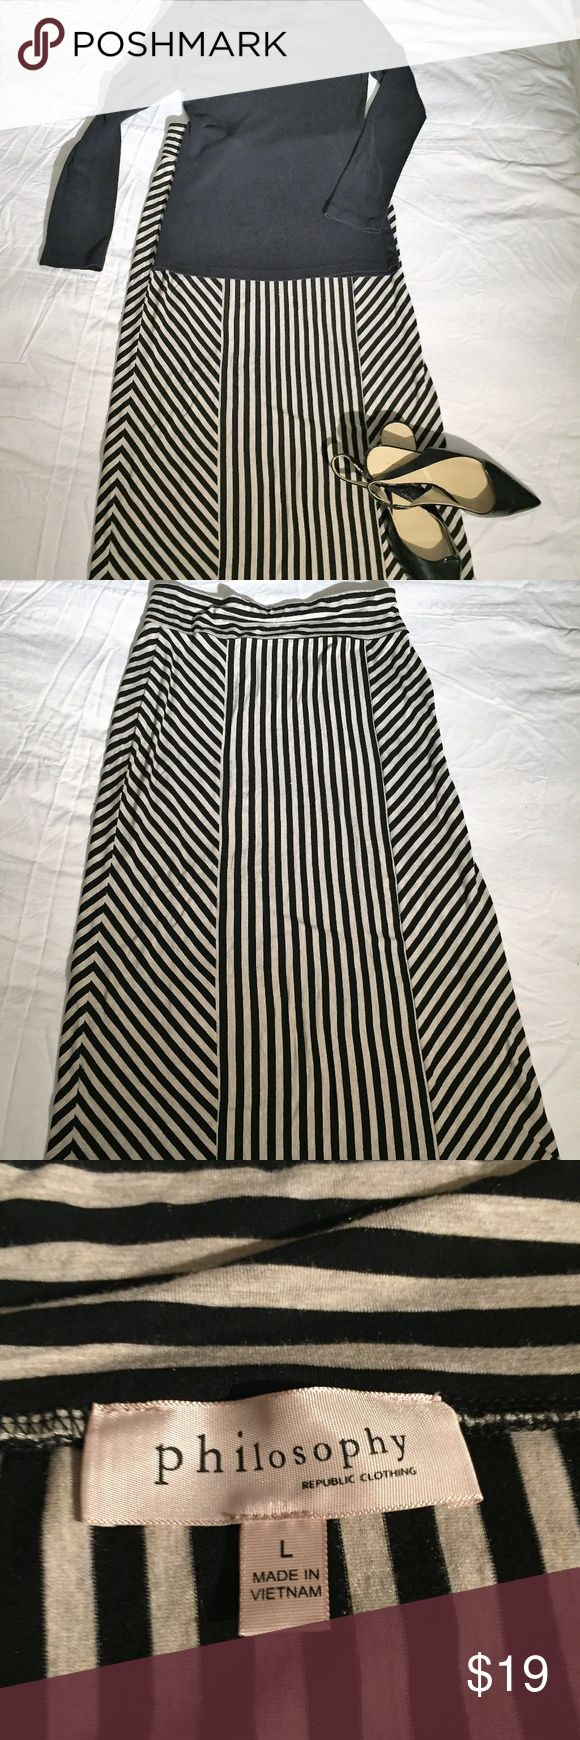 Philosophy Striped Long Skirt - L This skirt is black and tan(ish) and super soft!  Length measures 33.5 inches.  Elastic waist,  and very flattering pattern. Rayon/Spandex blend, machine washable for easy care.  Non smoking home and fast shipping! Philosophy Skirts Maxi